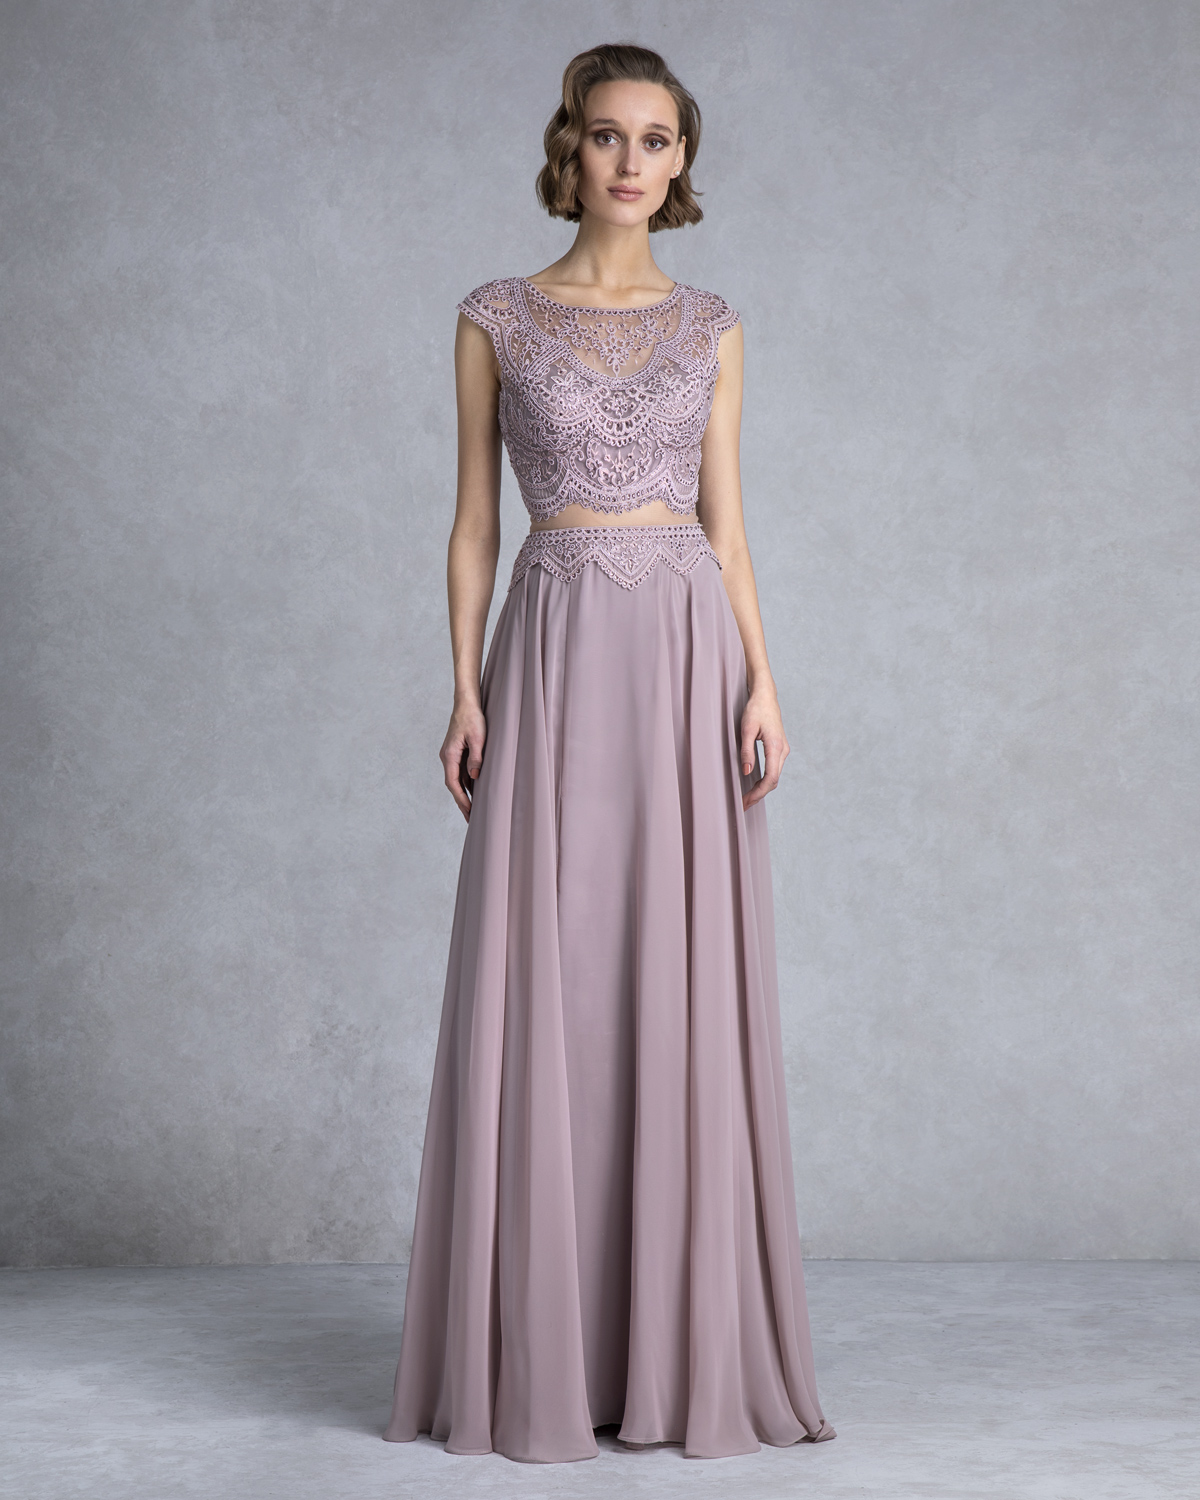 Evening Dresses / Long evening dress with lace and beading on the top